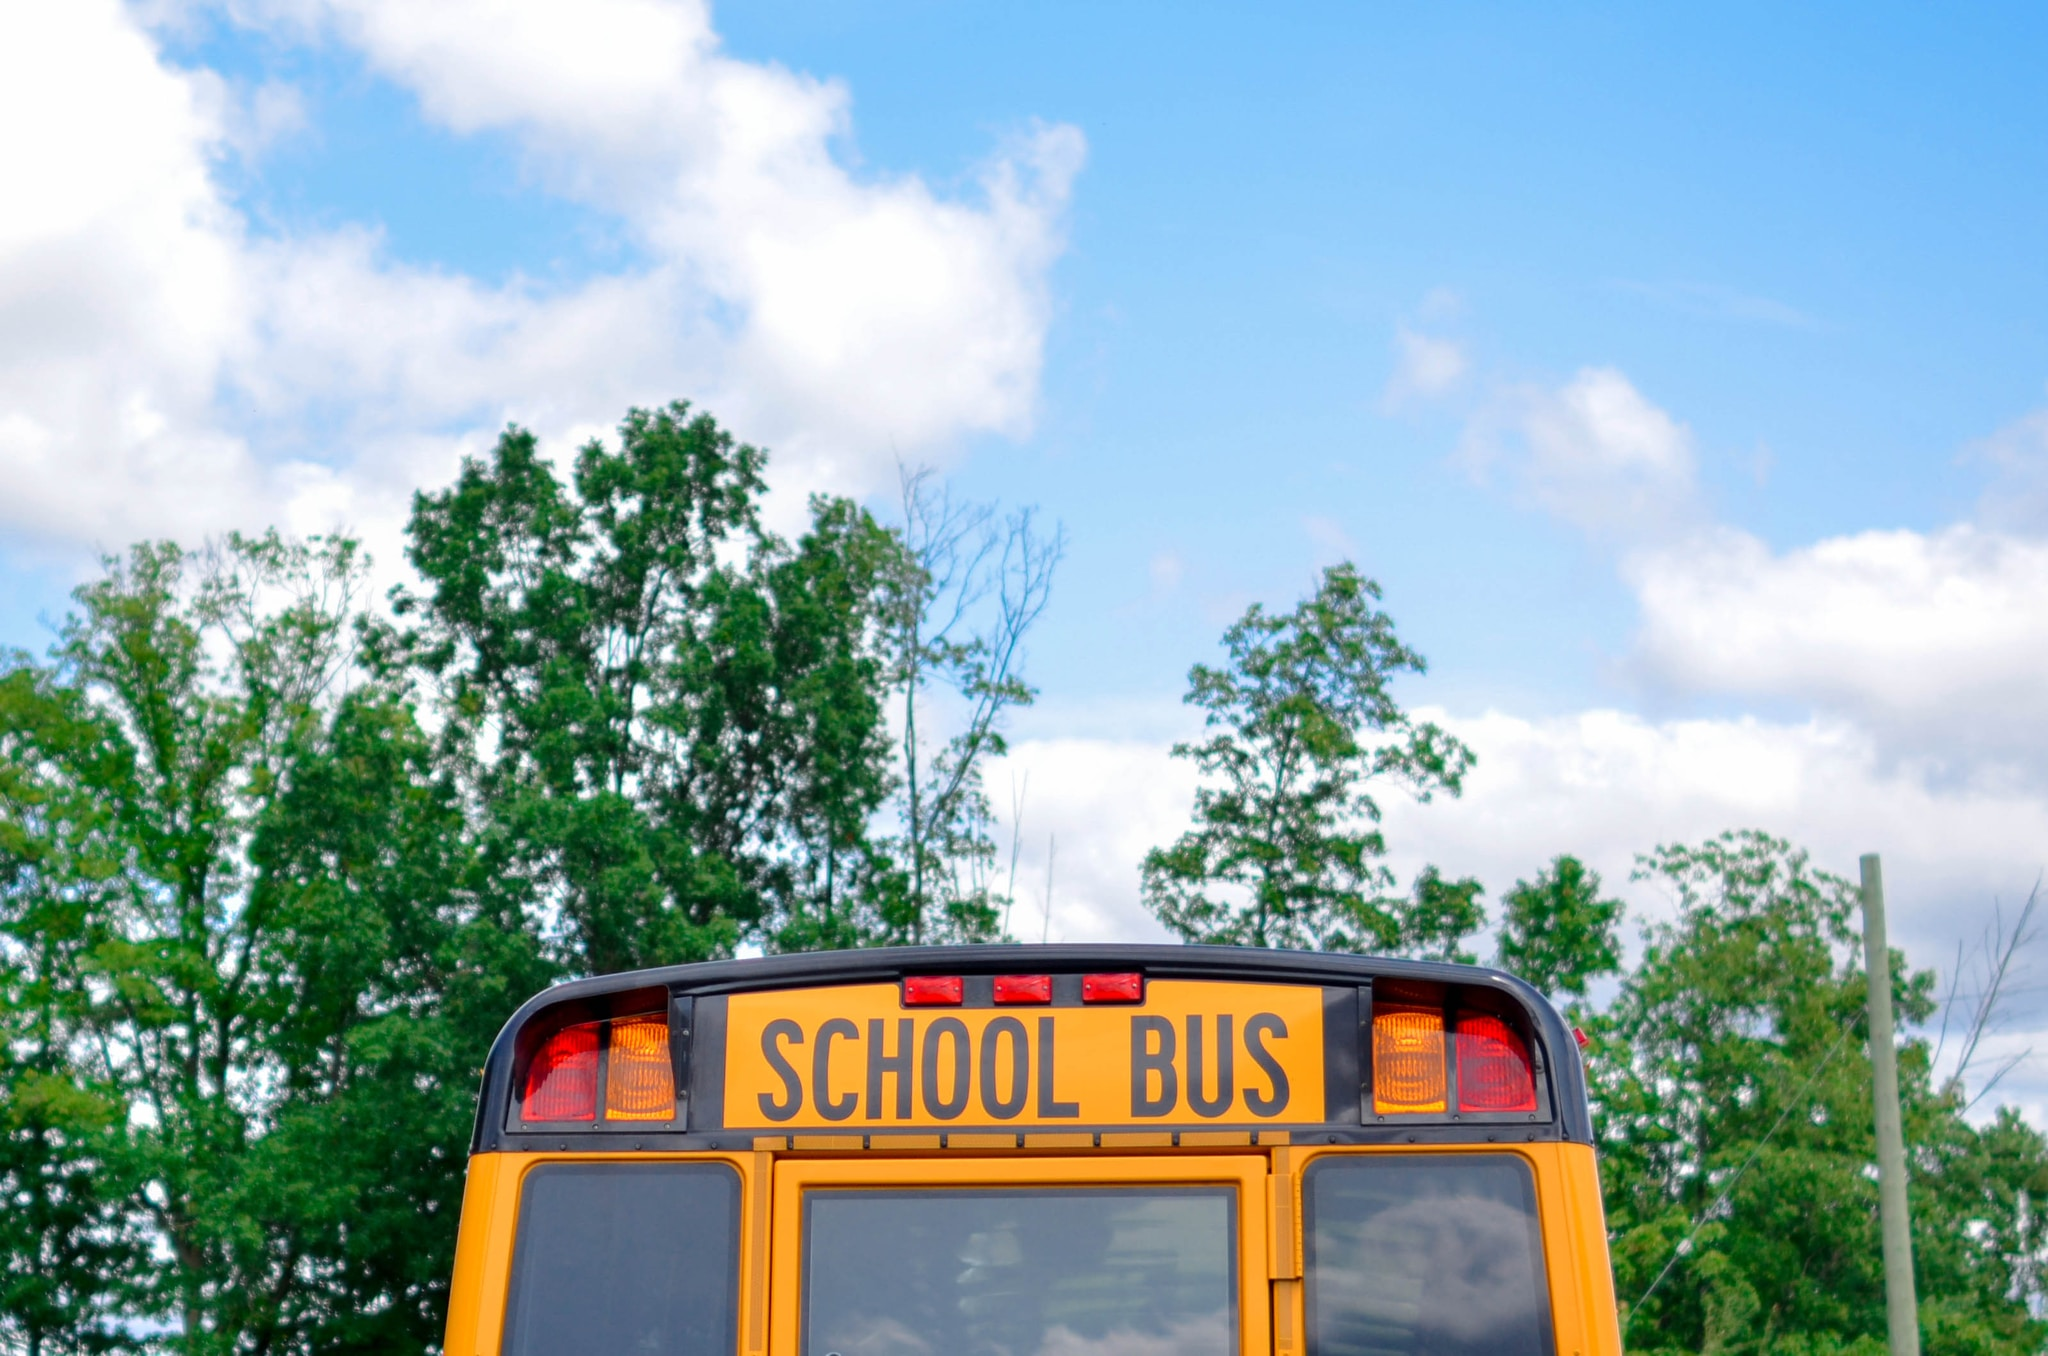 school bus near green trees under cloudy sky during daytime